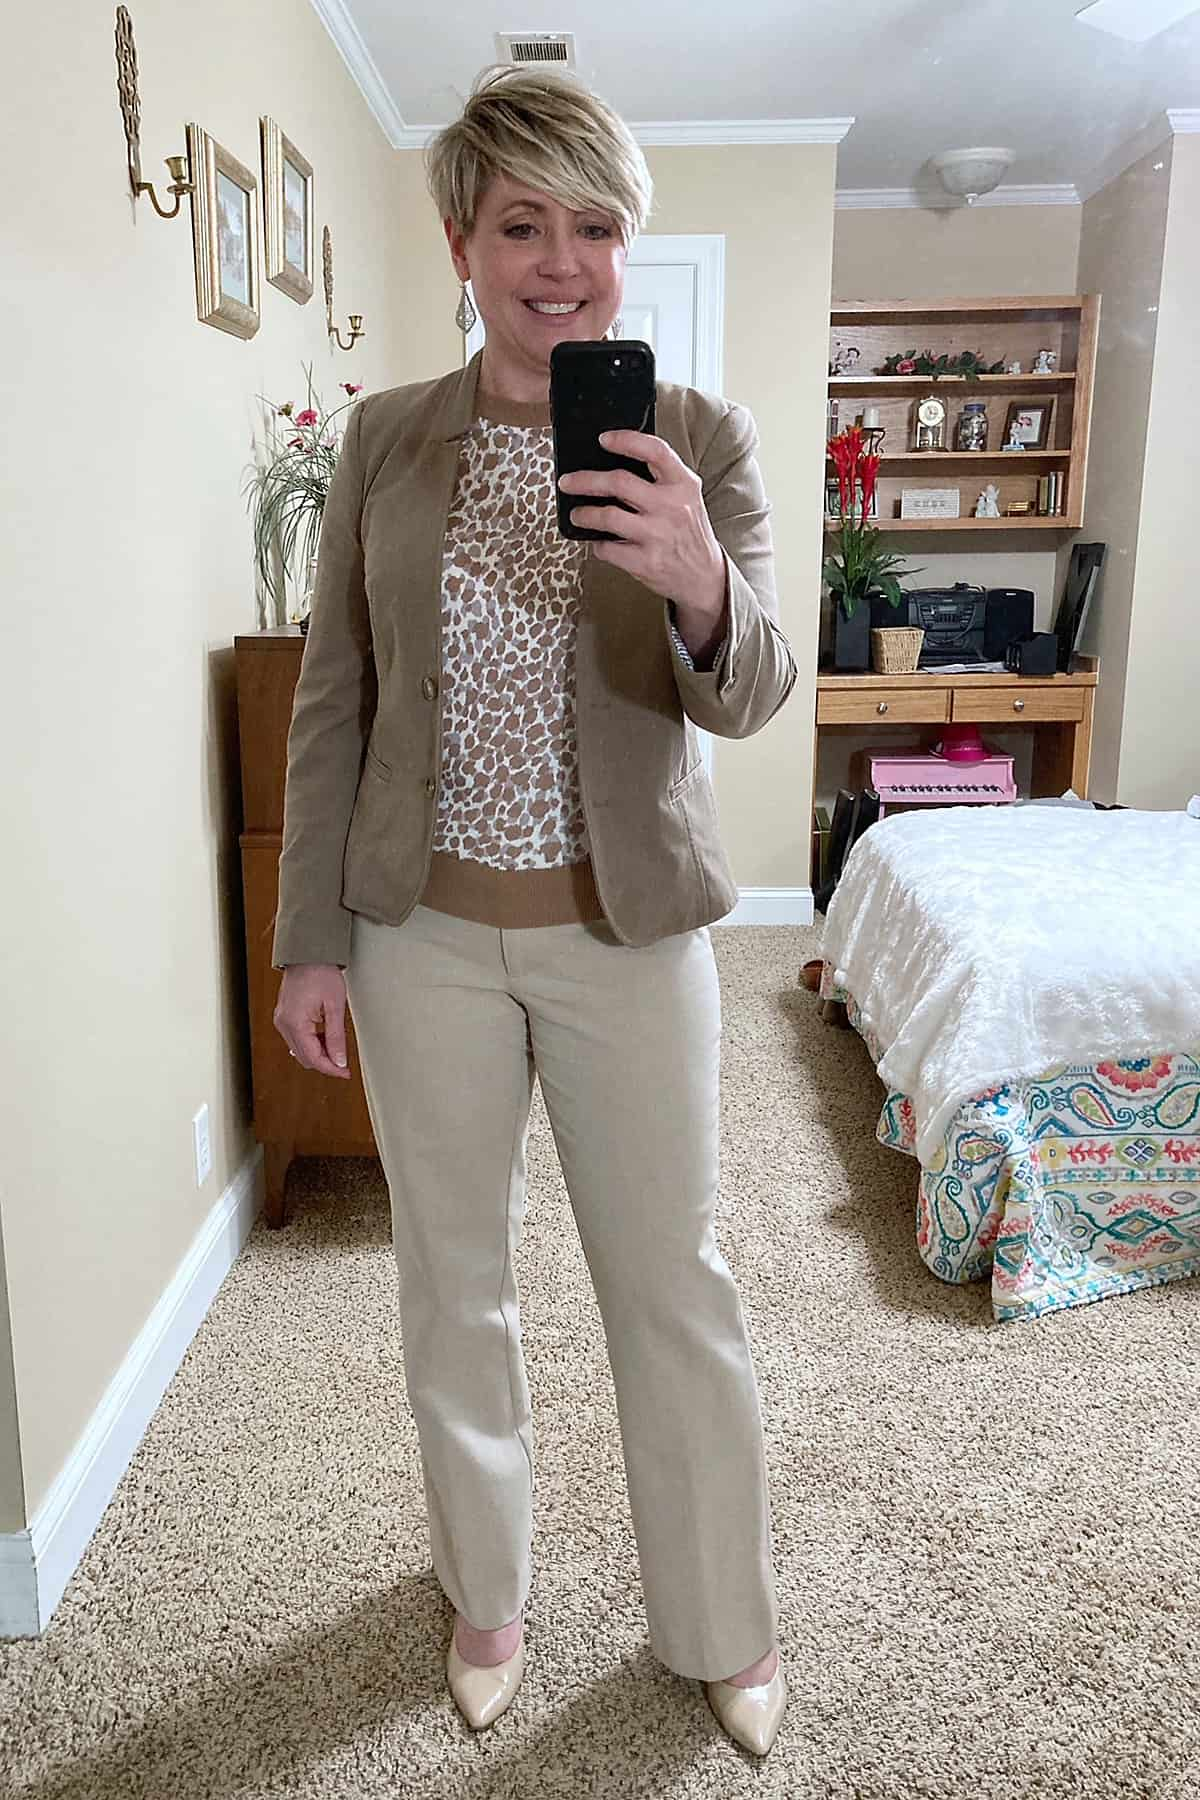 Ladies neutral work wear outfit with leopard sweater from Ann Taylor